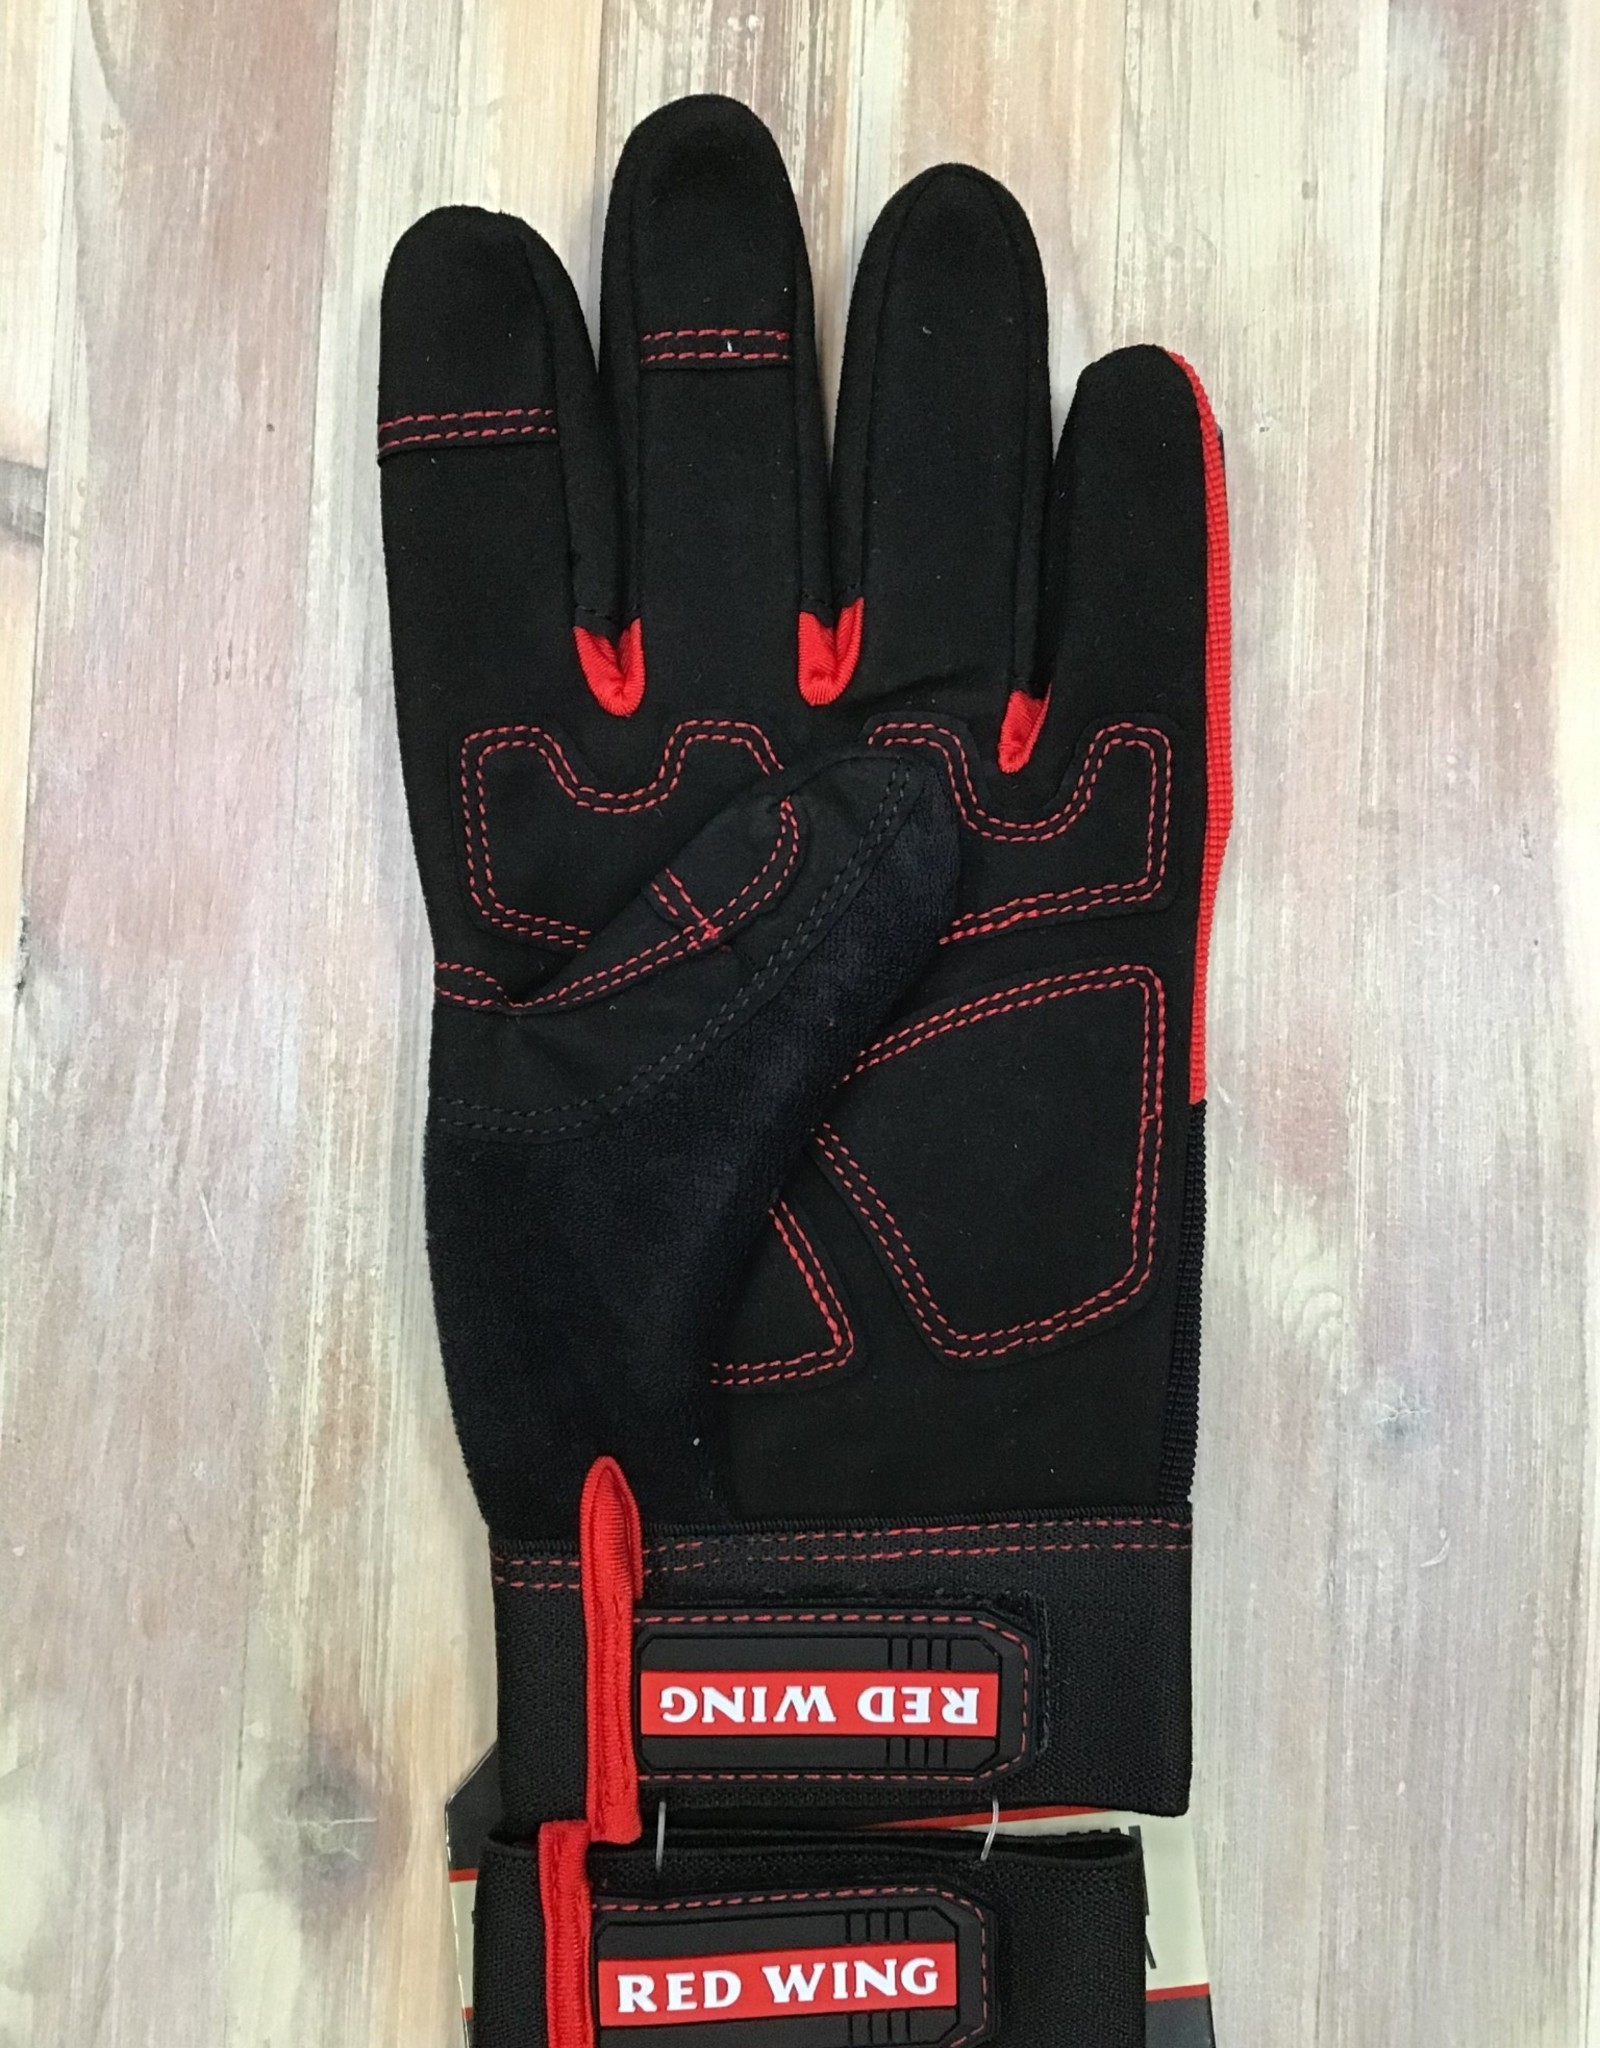 Red Wing Available In Store ONLY - Red Wing Master Pro Gloves